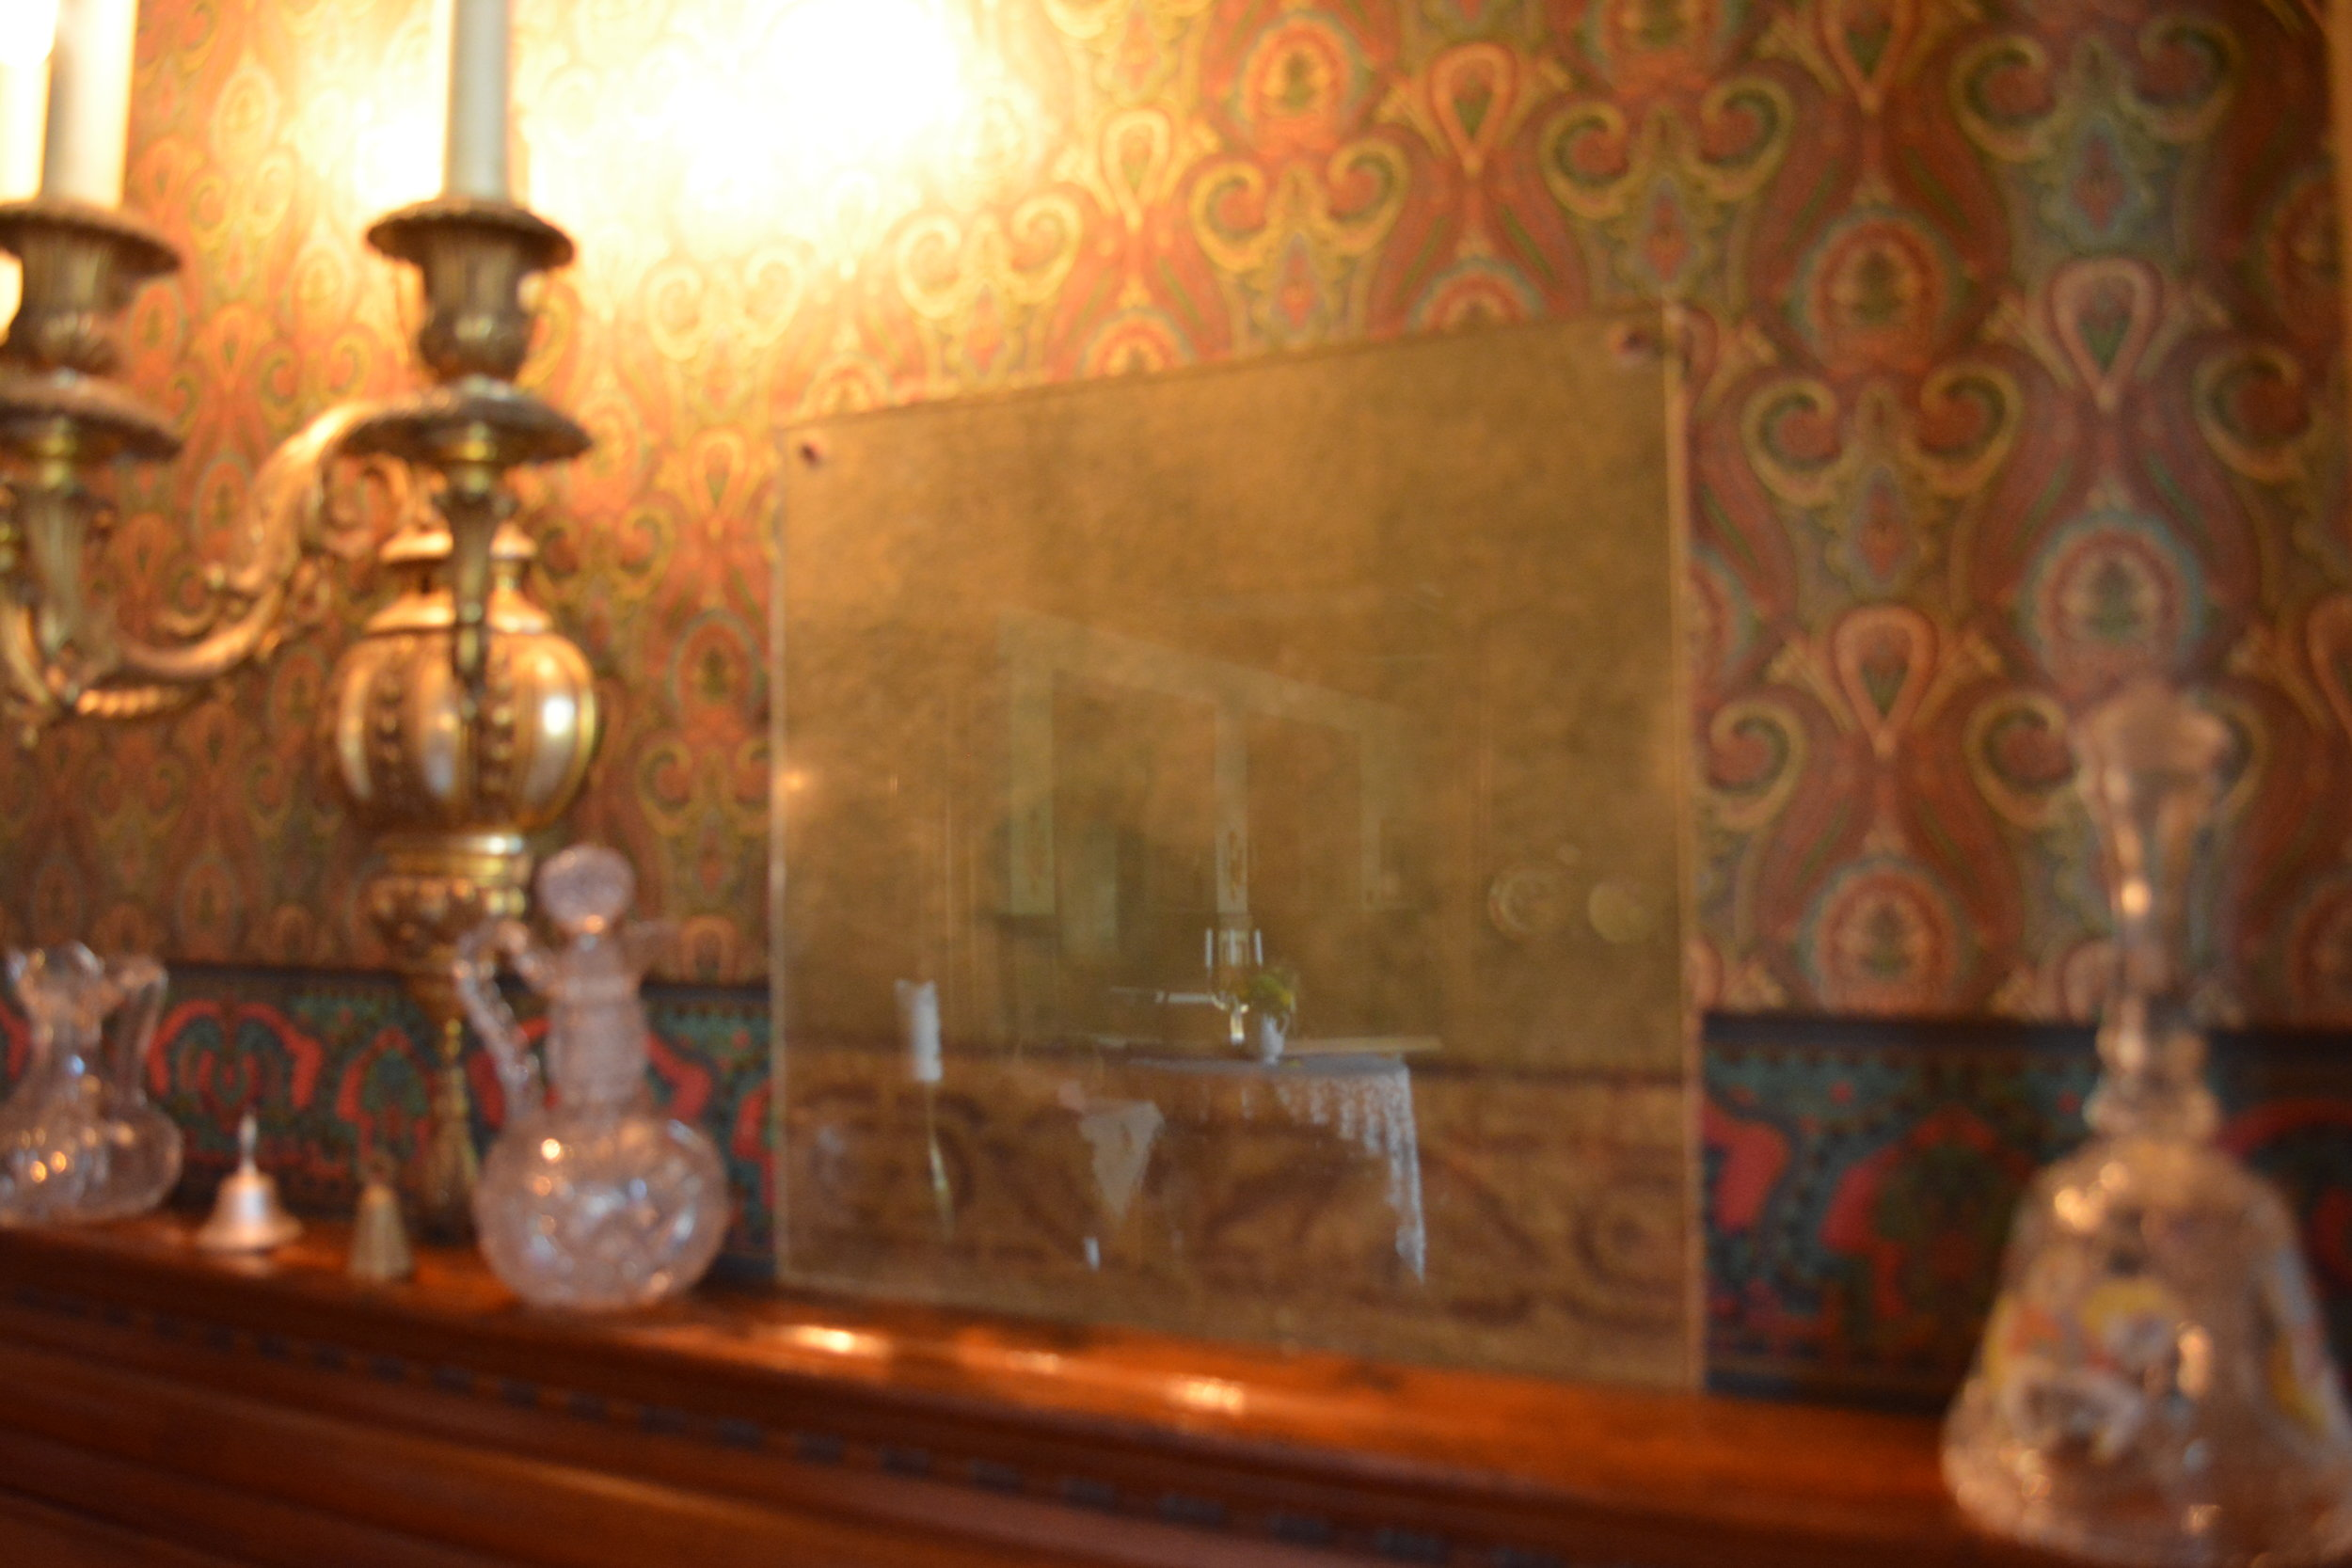 The original painted plaster in the dining room protected by plexiglass.